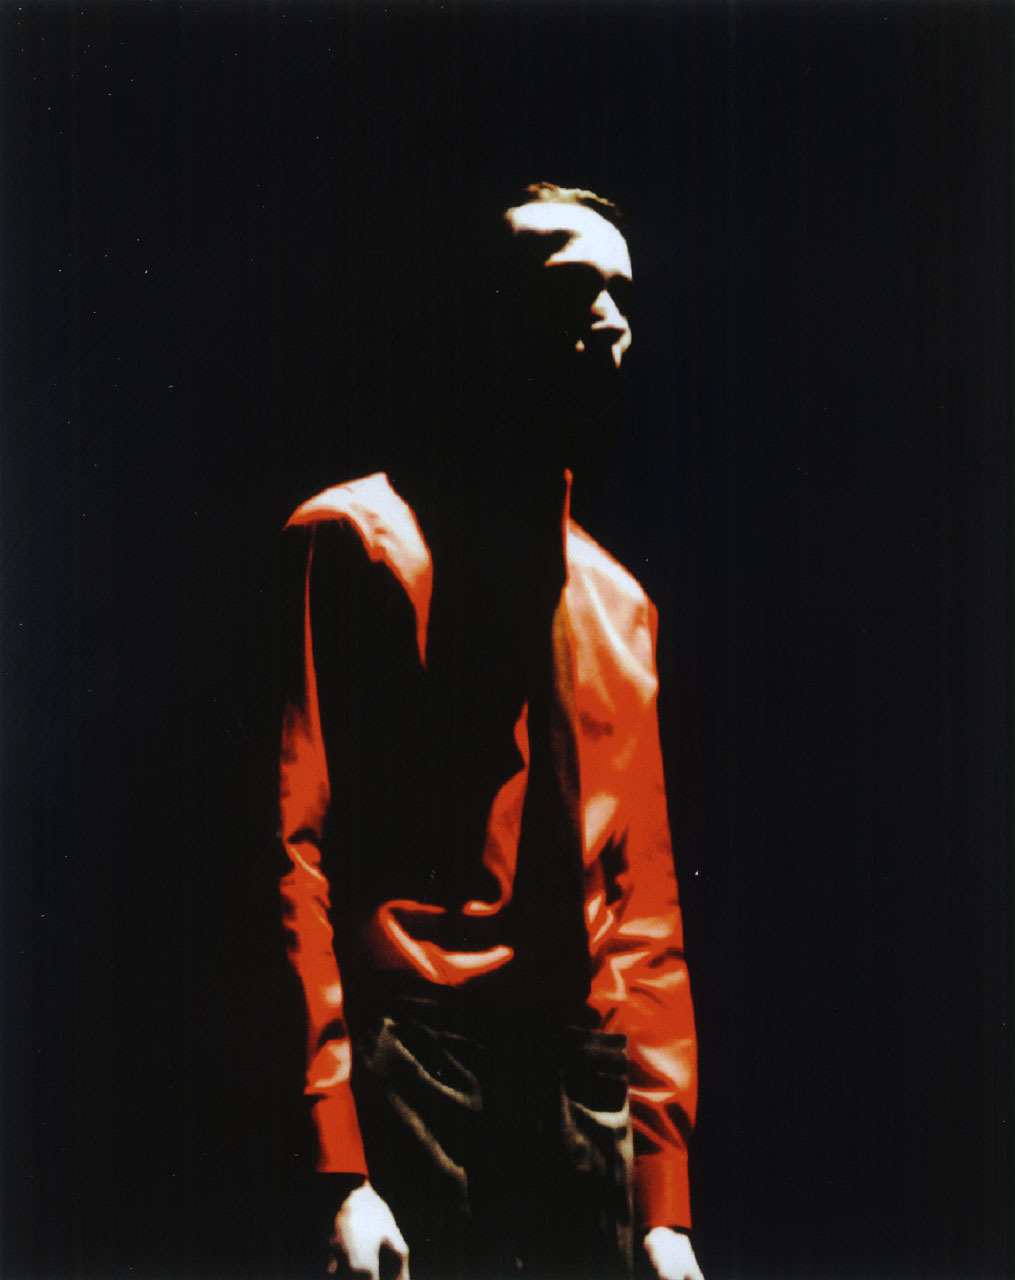 Fall-Winter 1998-1999, Raf Simons (Paris, July 1998)photography ronald stoops make-up inge grognard INGE GROGNARD/RONALD STOOPS, Ludion